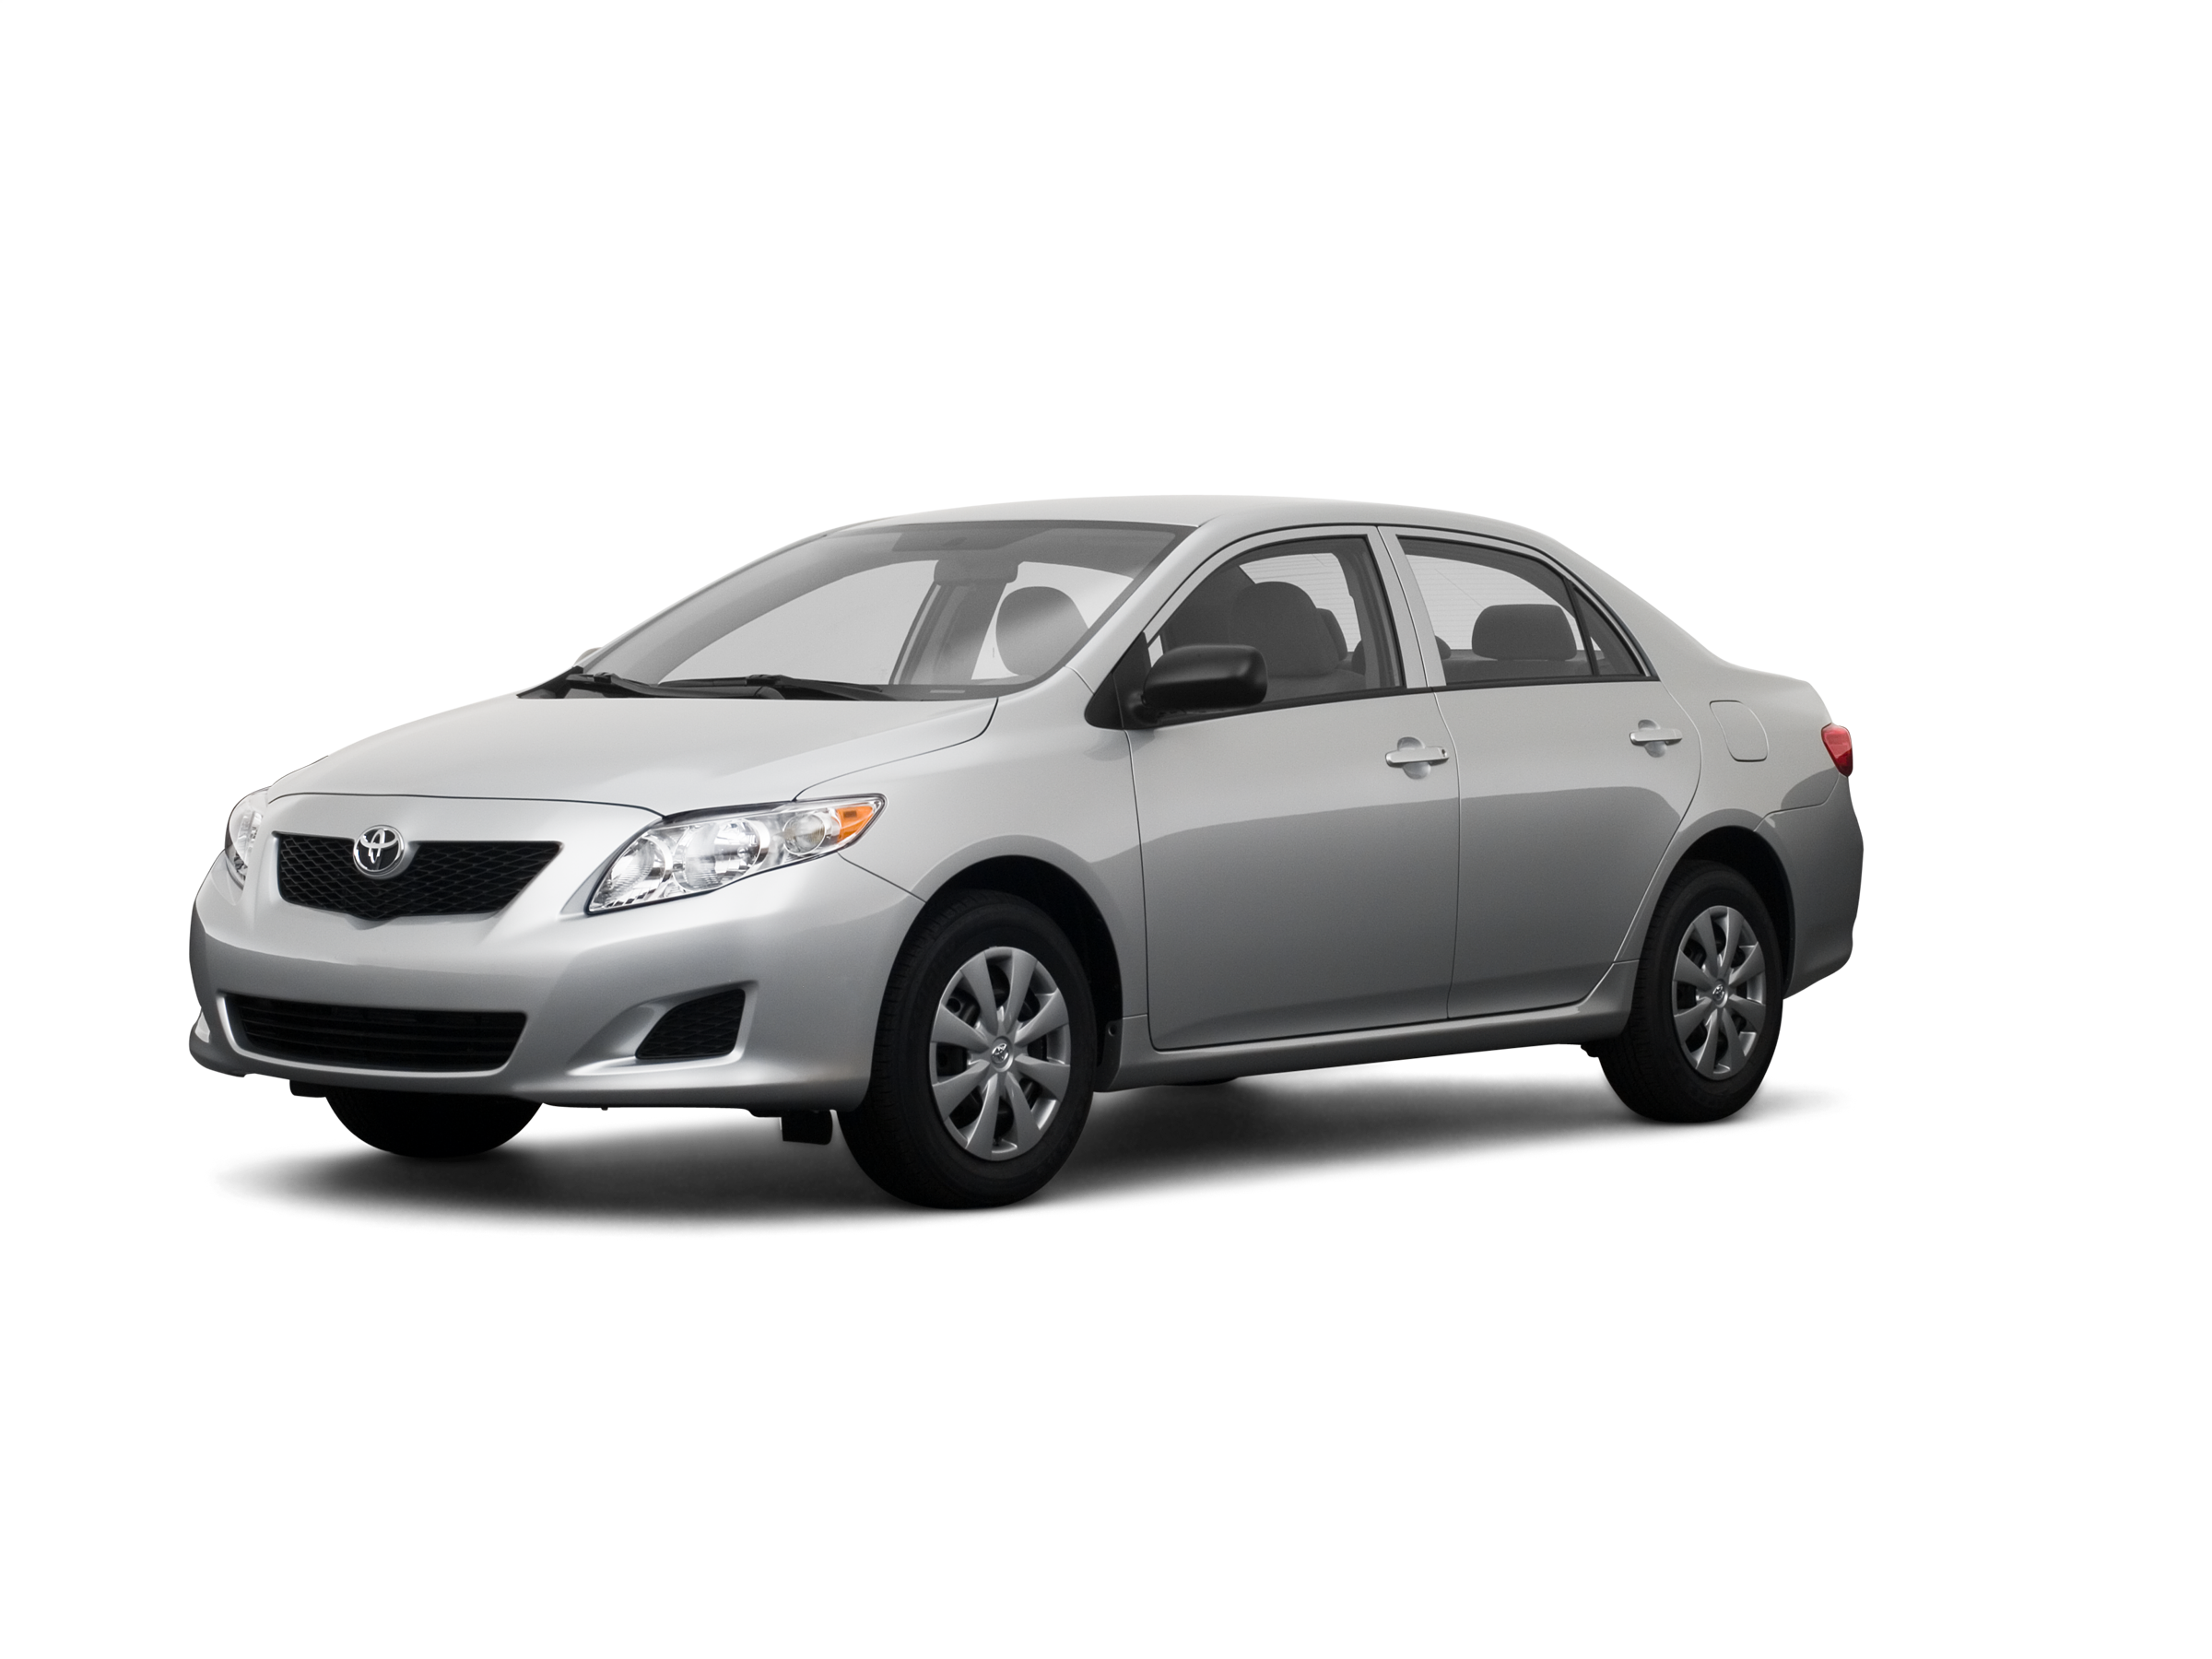 2009 Toyota Corolla Values Cars For Sale Kelley Blue Book